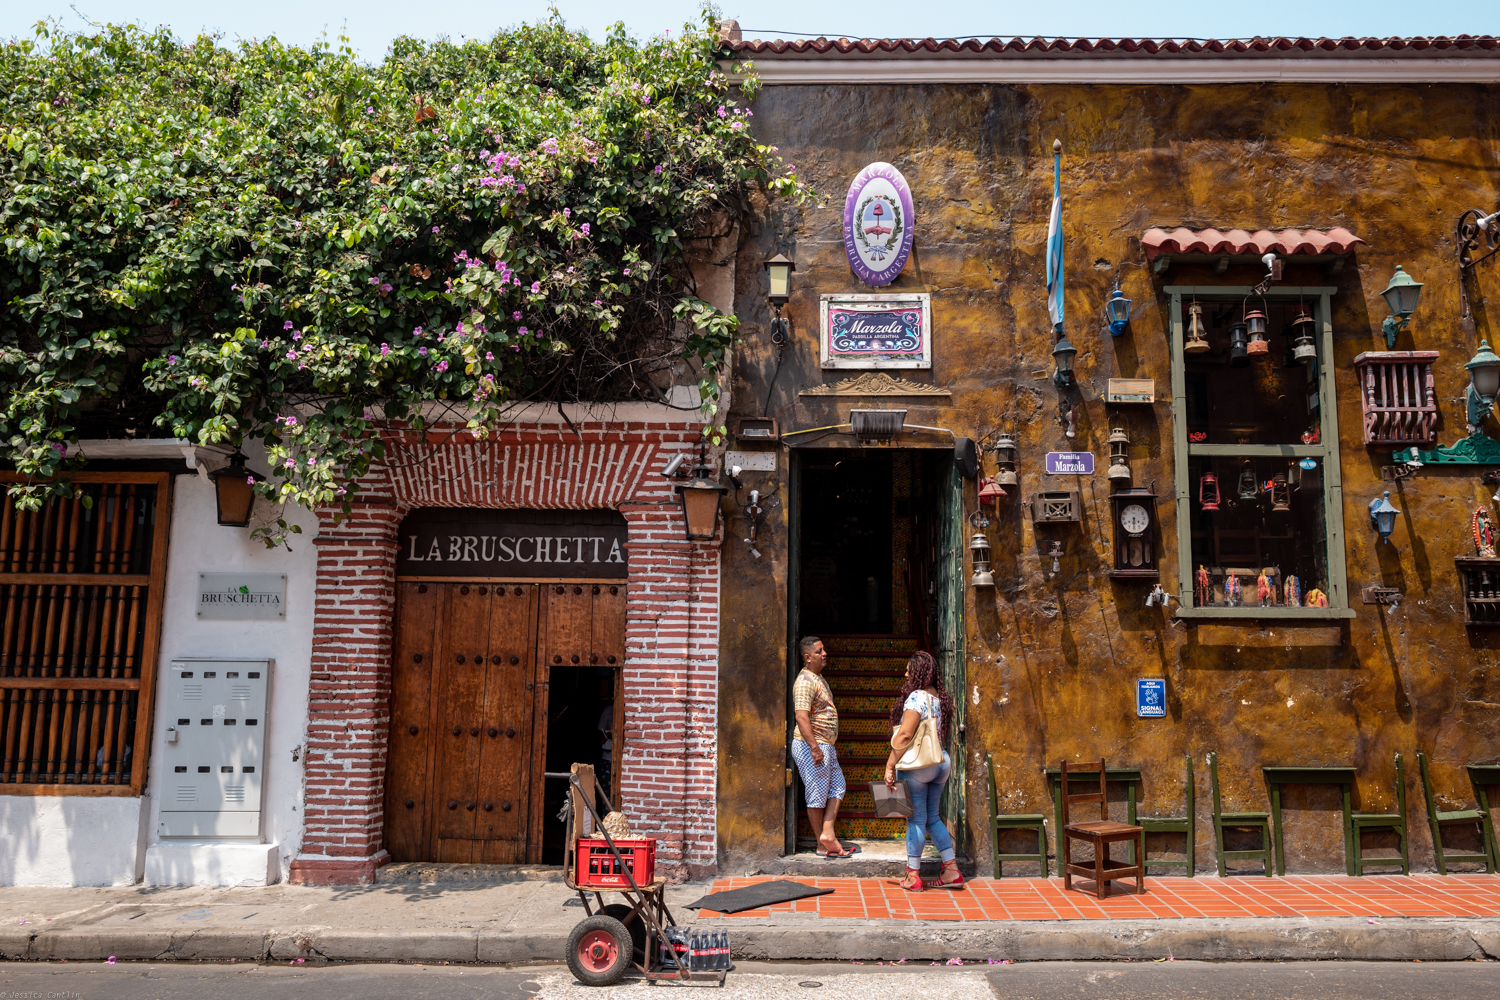 Streets of Old Town Cartagena